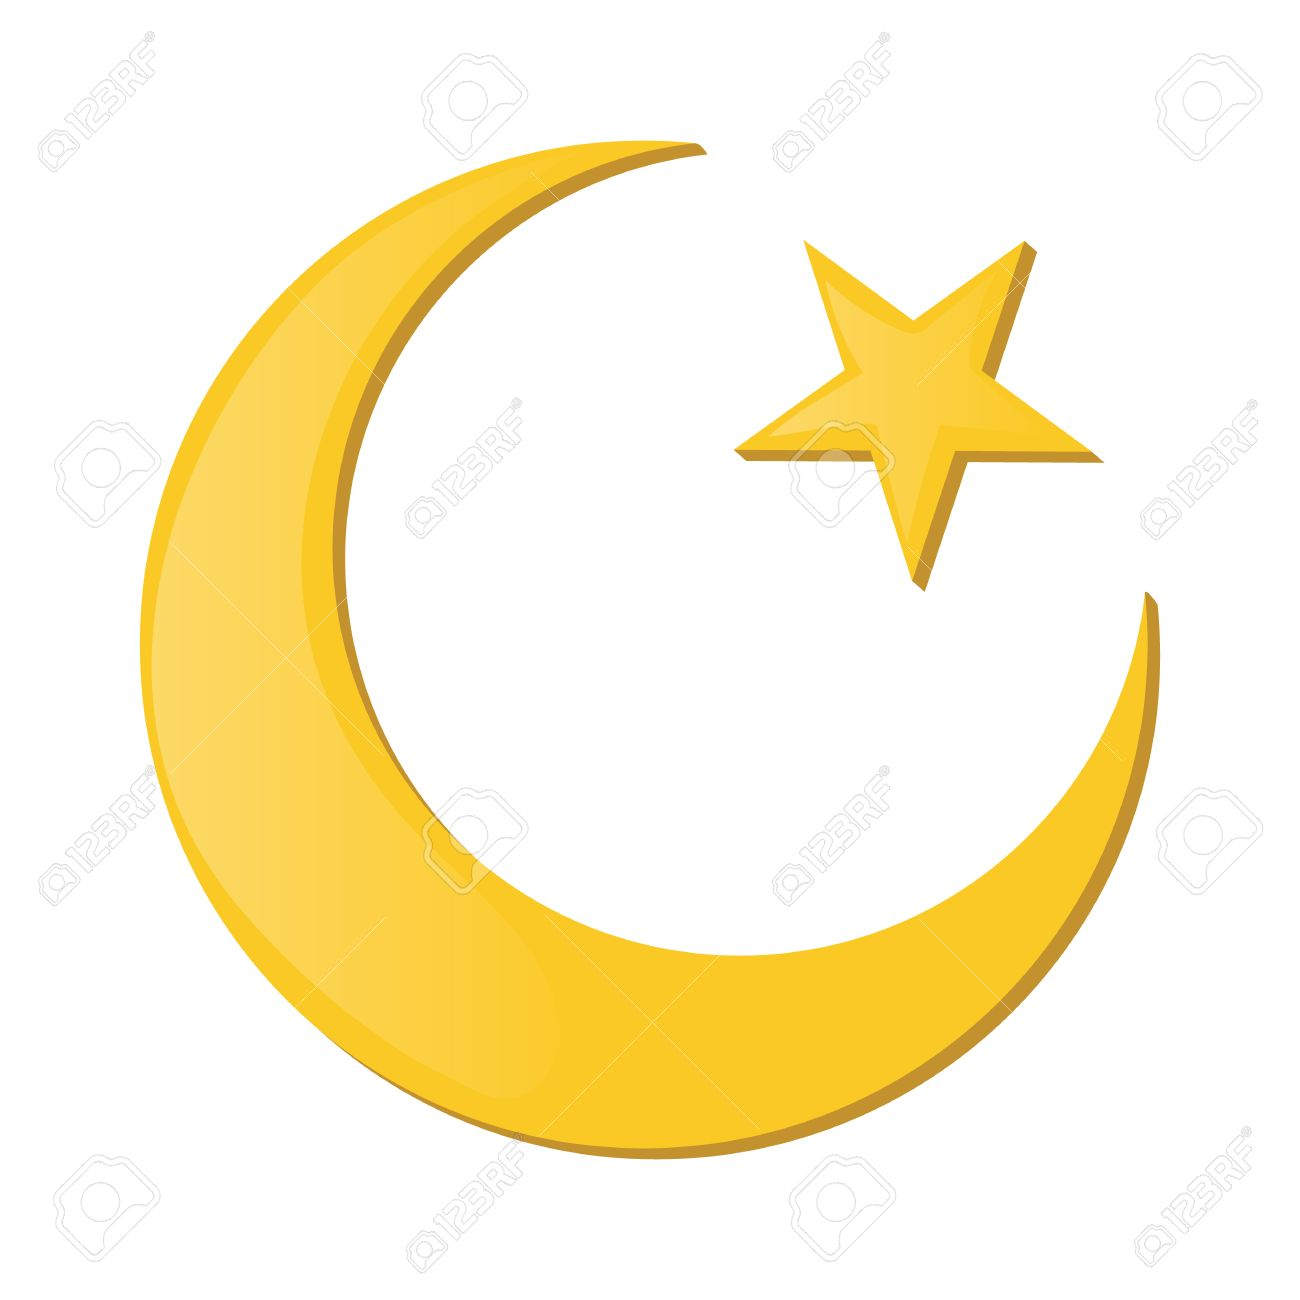 Crescent and star cartoon icon on a white background islam symbol crescent and star cartoon icon on a white background islam symbol stock vector 51175920 biocorpaavc